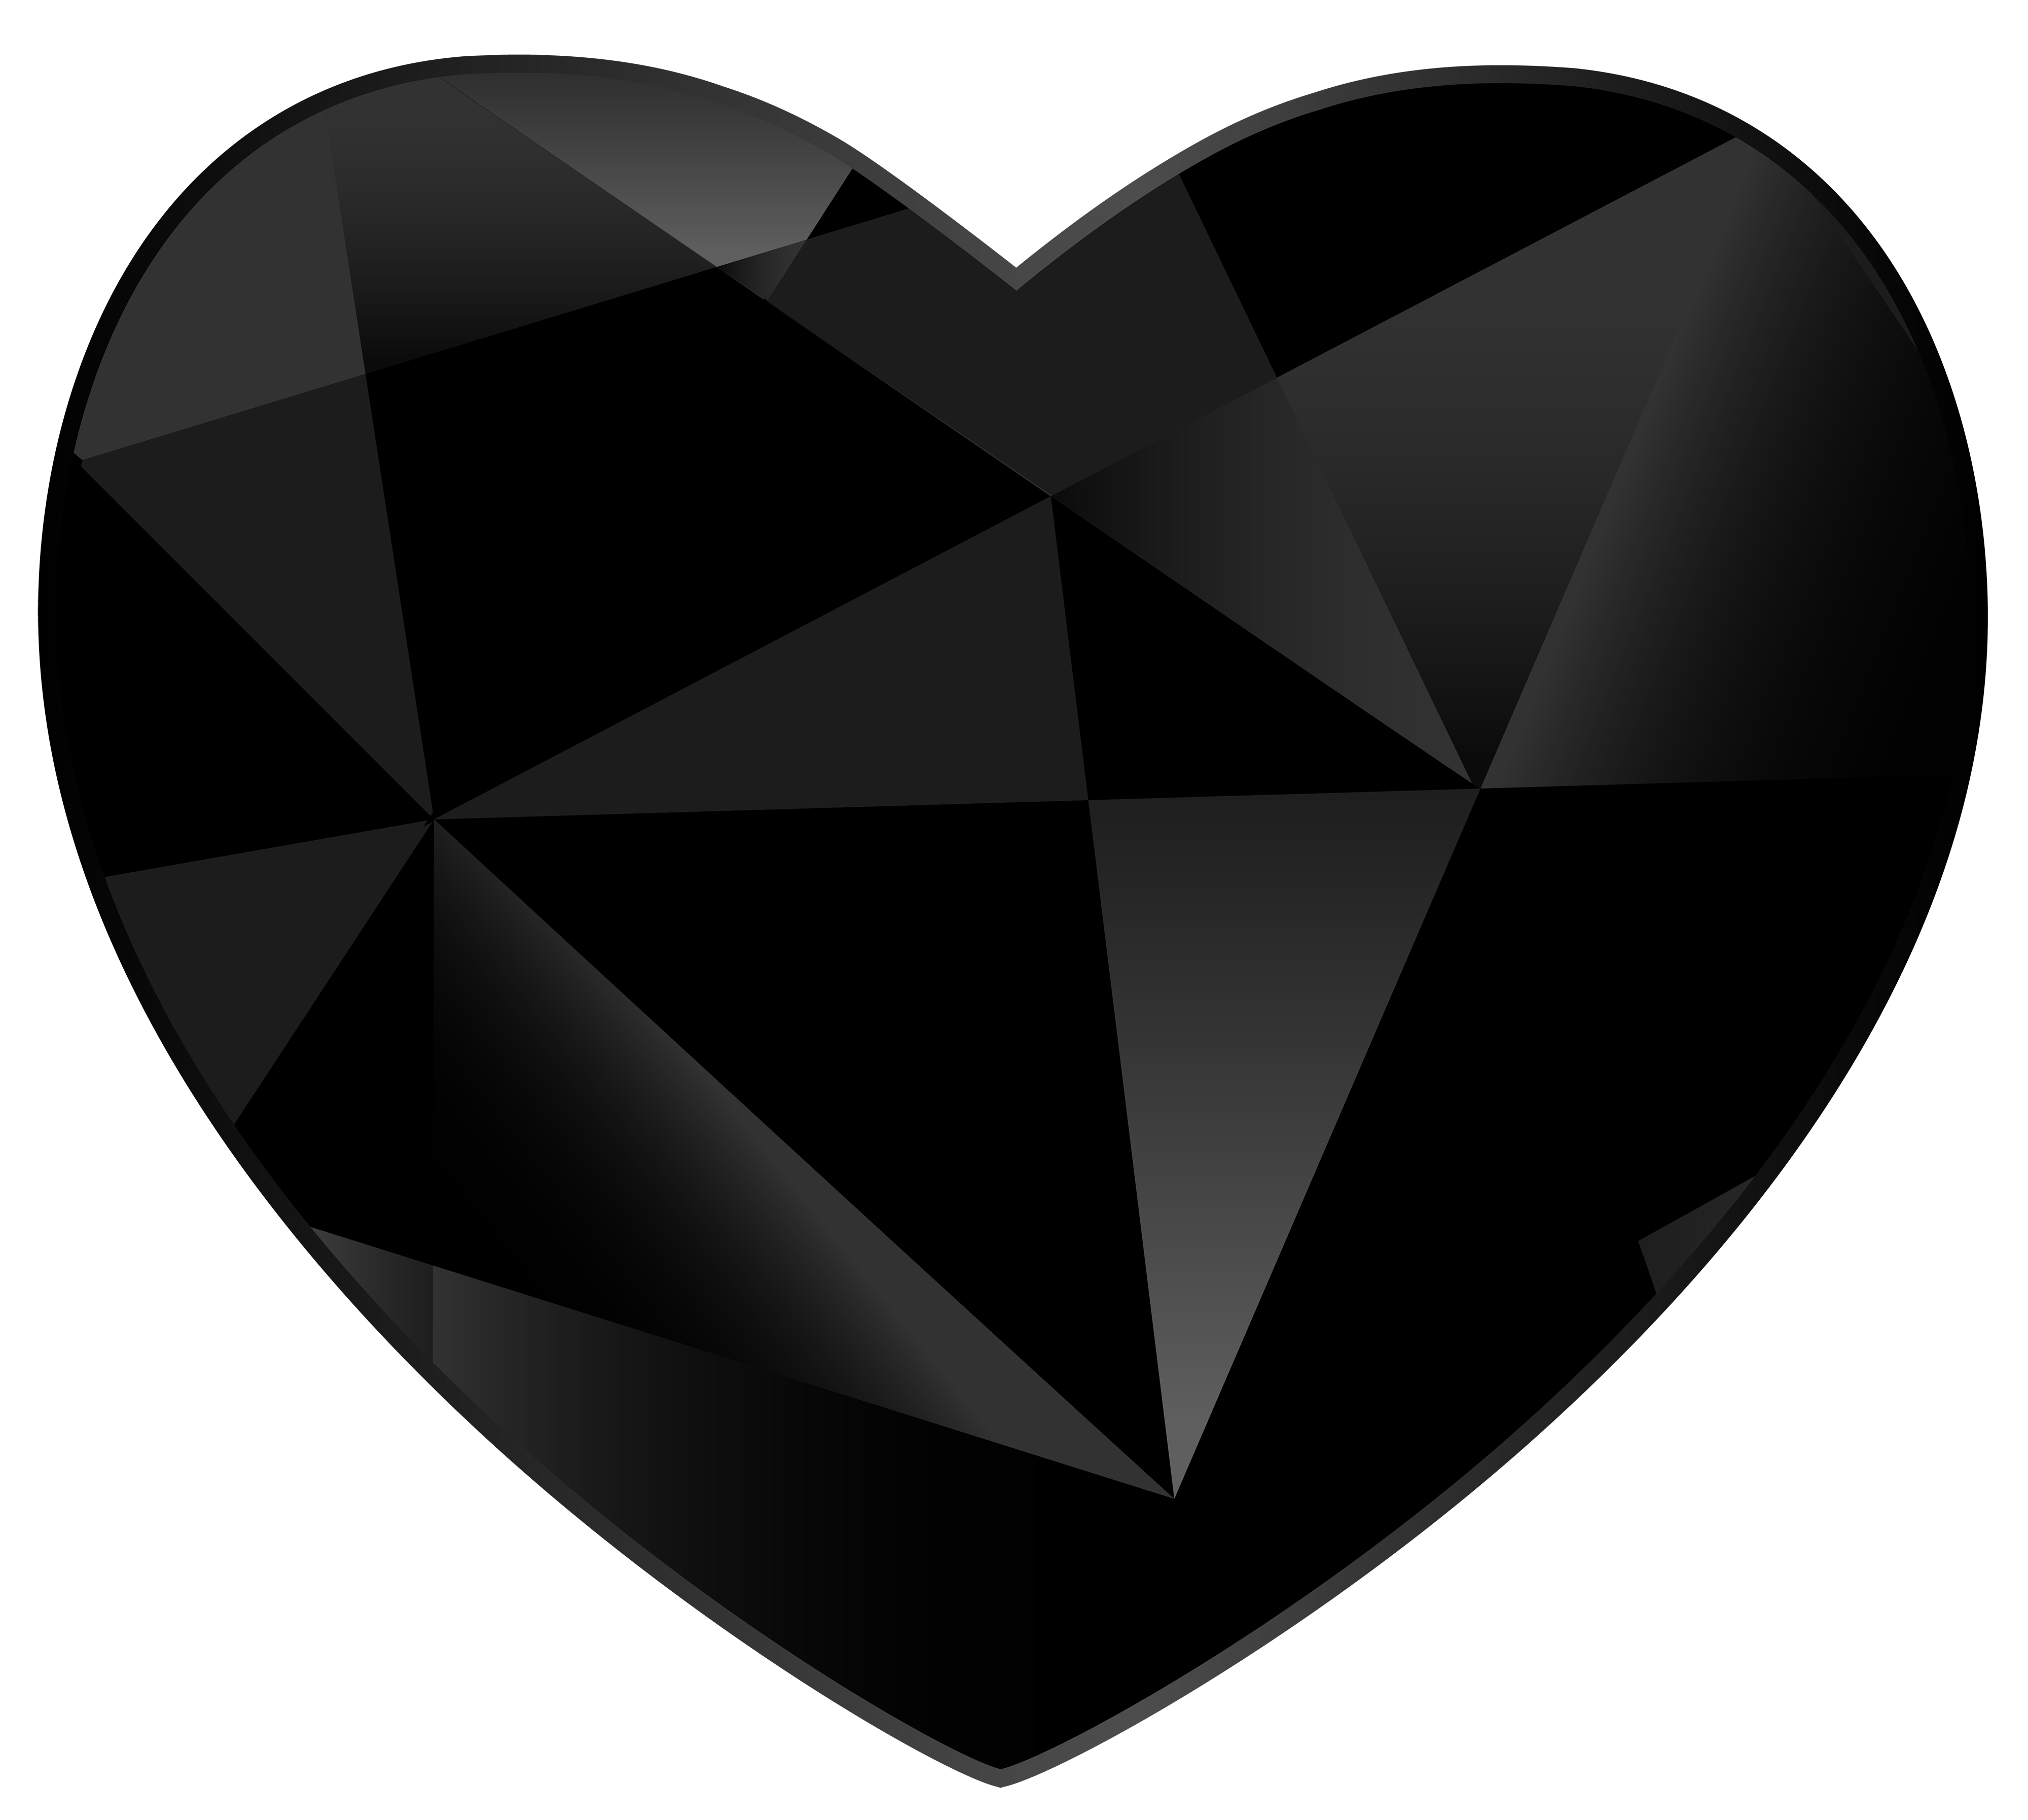 White heart clipart transparent picture royalty free download Black Gem Heart PNG Clipart - Best WEB Clipart picture royalty free download